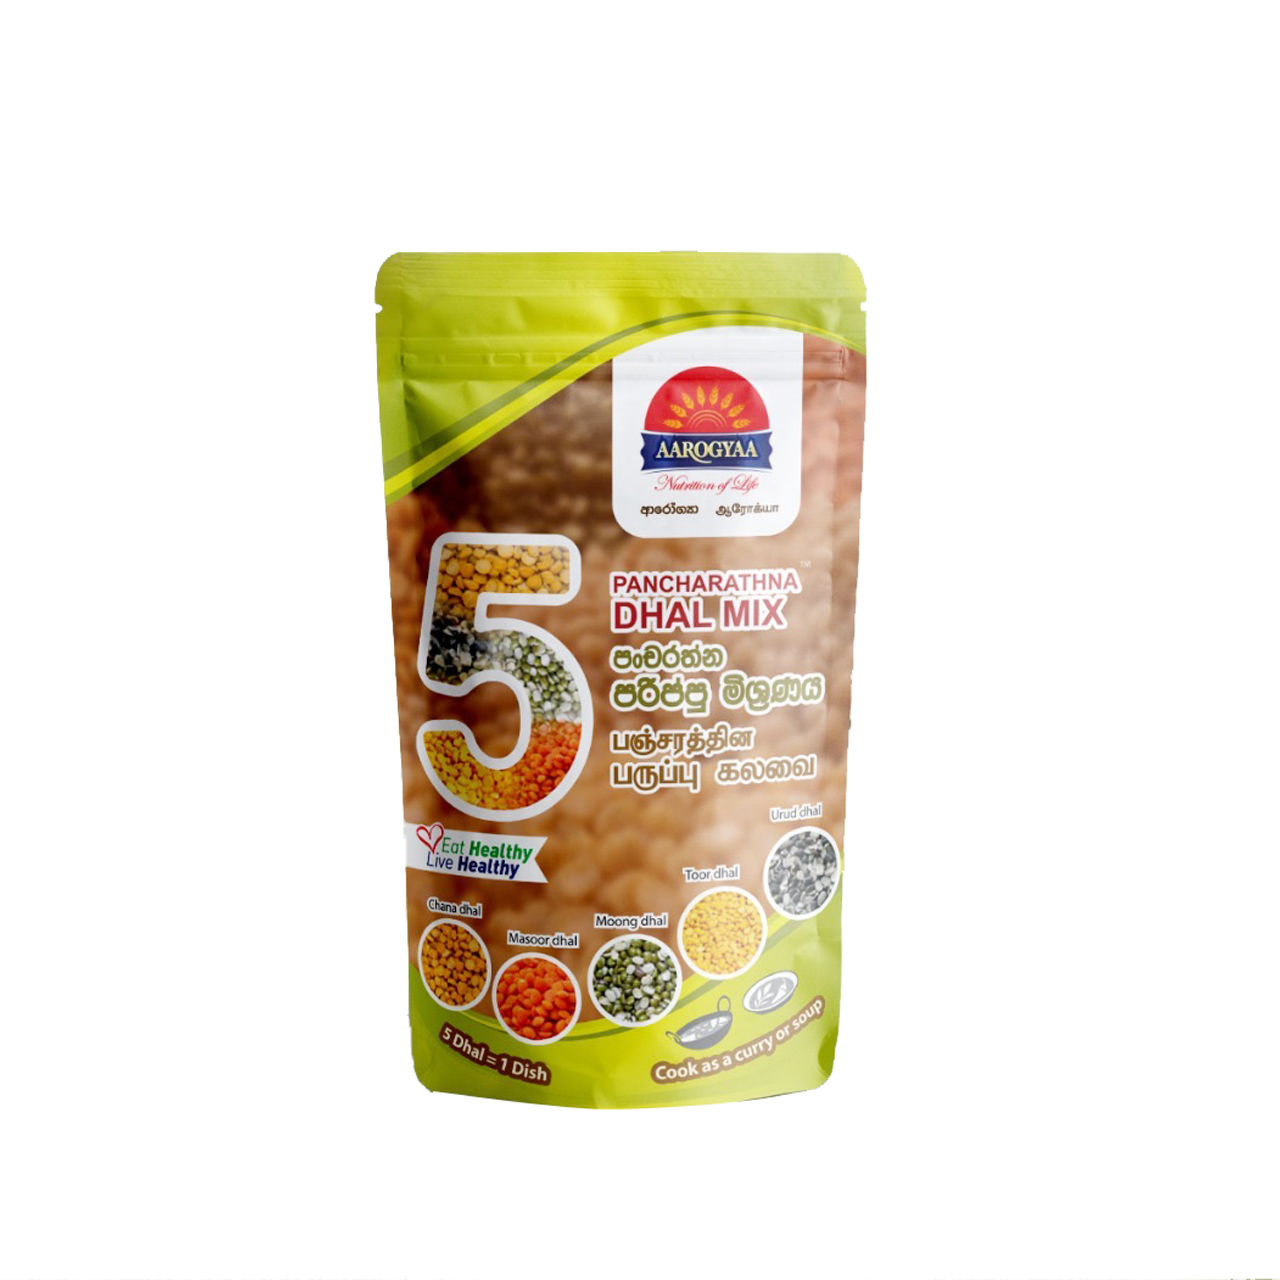 Aarogyaa Five Dhal Super Mix 500g - in Sri Lanka